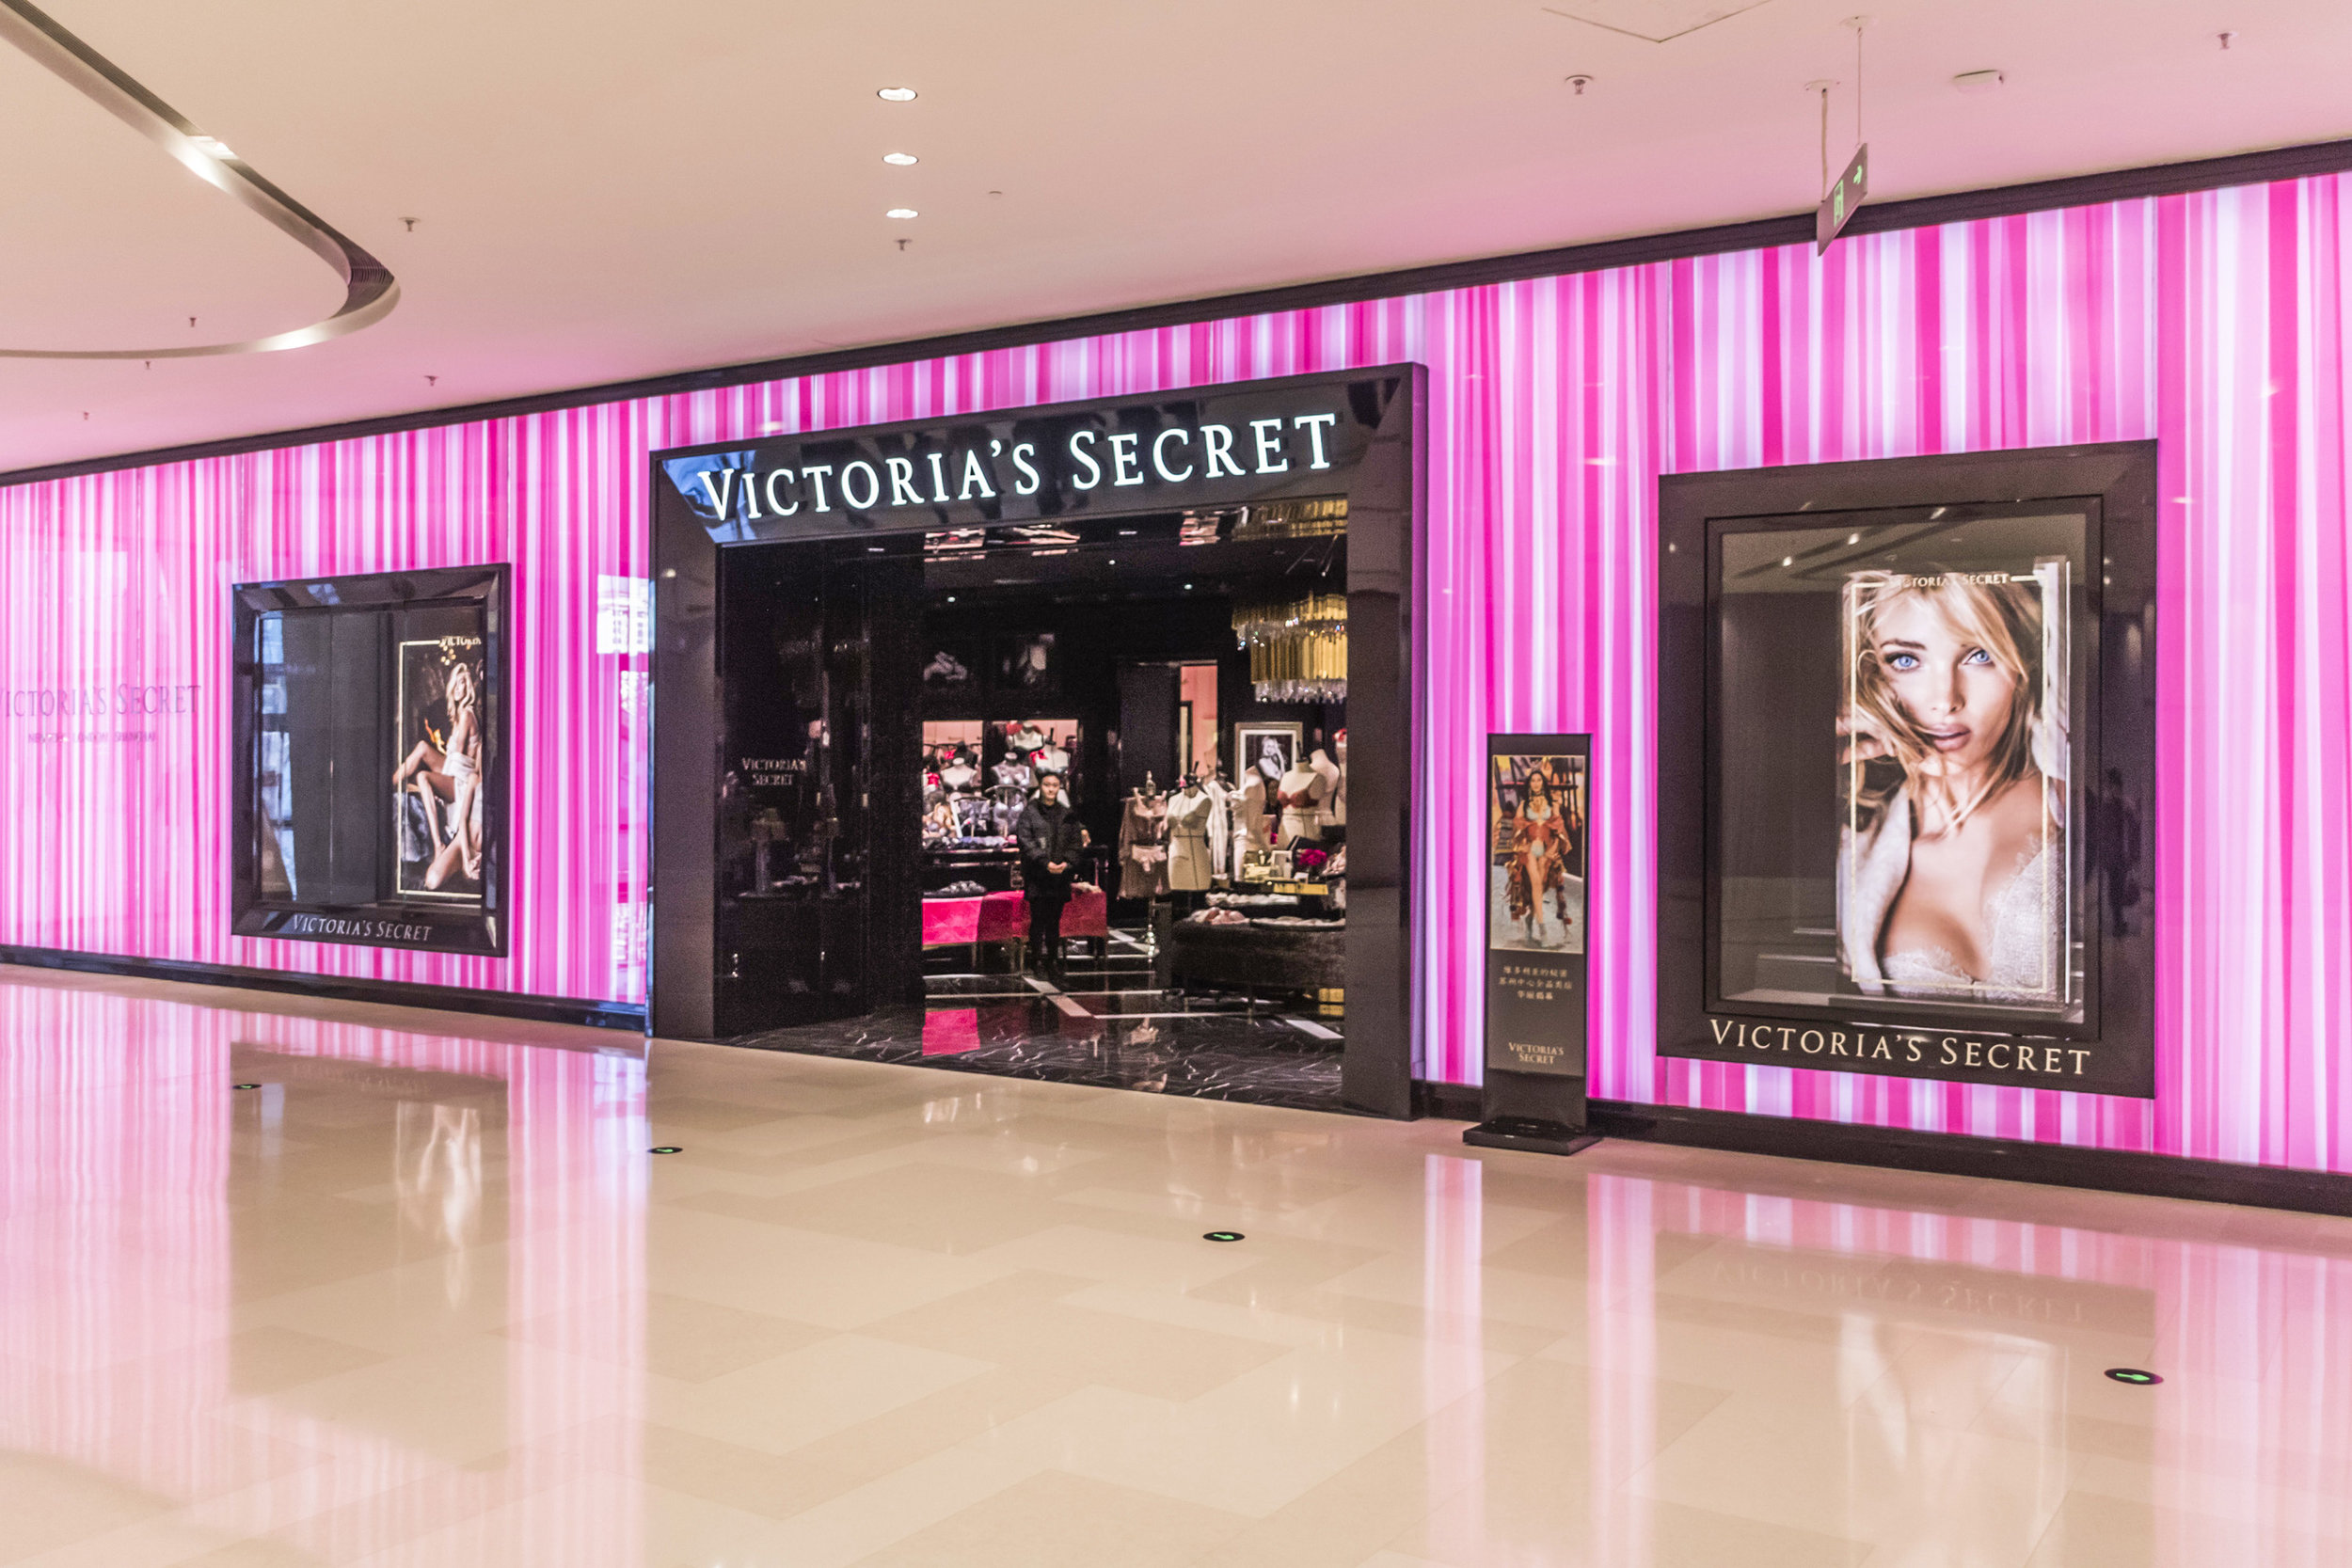 jeb_customprojects_retailfacades_victoriasecret_suzhou_china_02.jpg